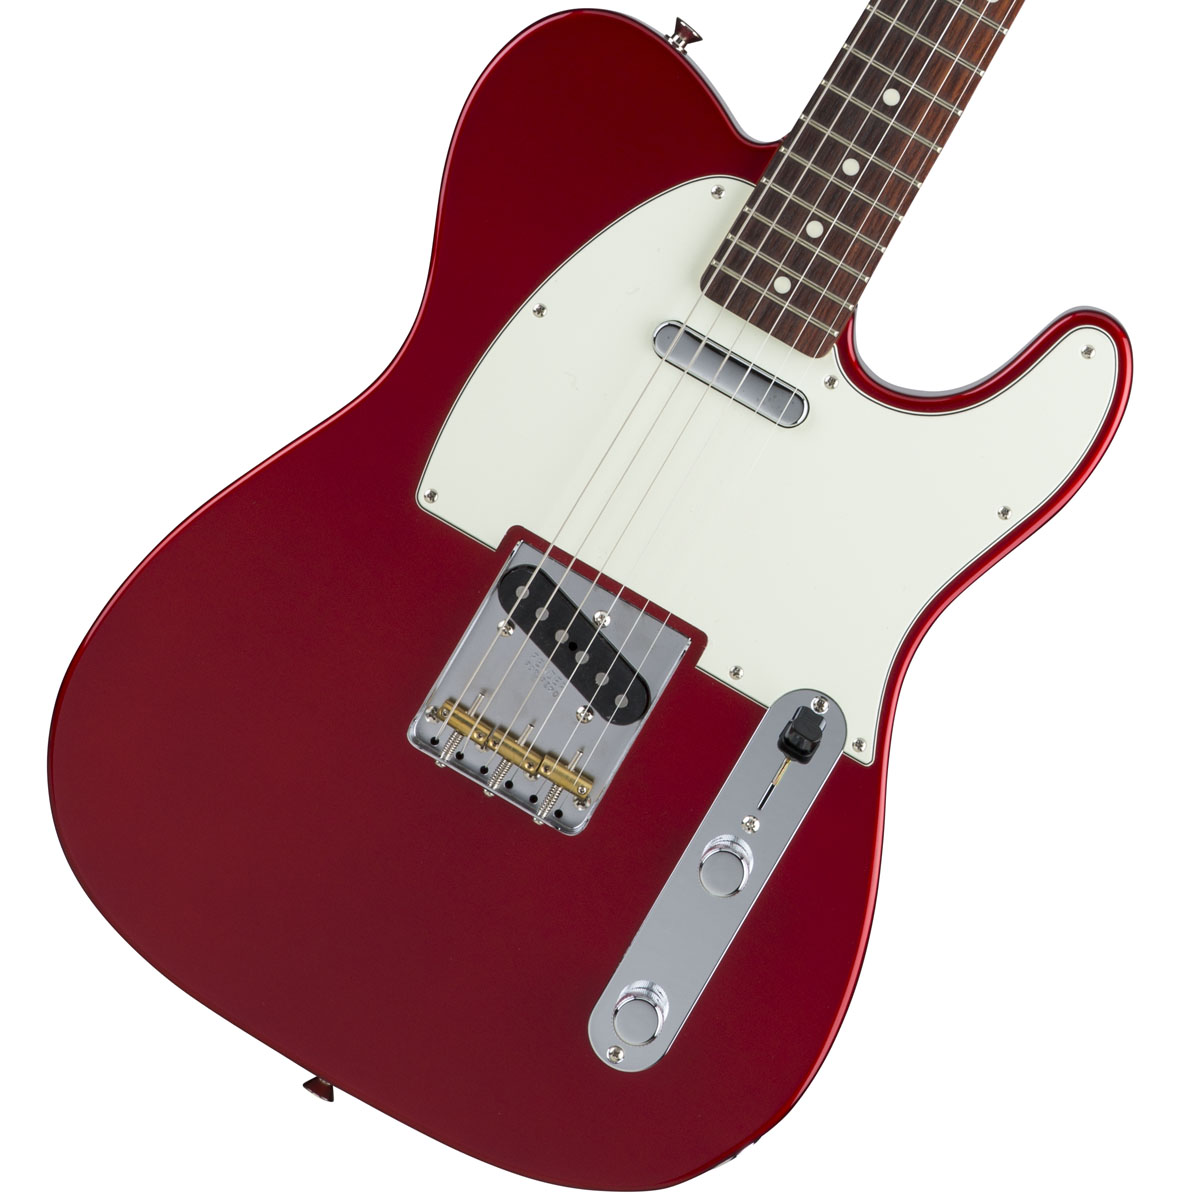 Fender / Made in Japan Hybrid 60s Telecaster Candy Apple Red《カスタムショップのお手入れ用品を進呈/+671038200》